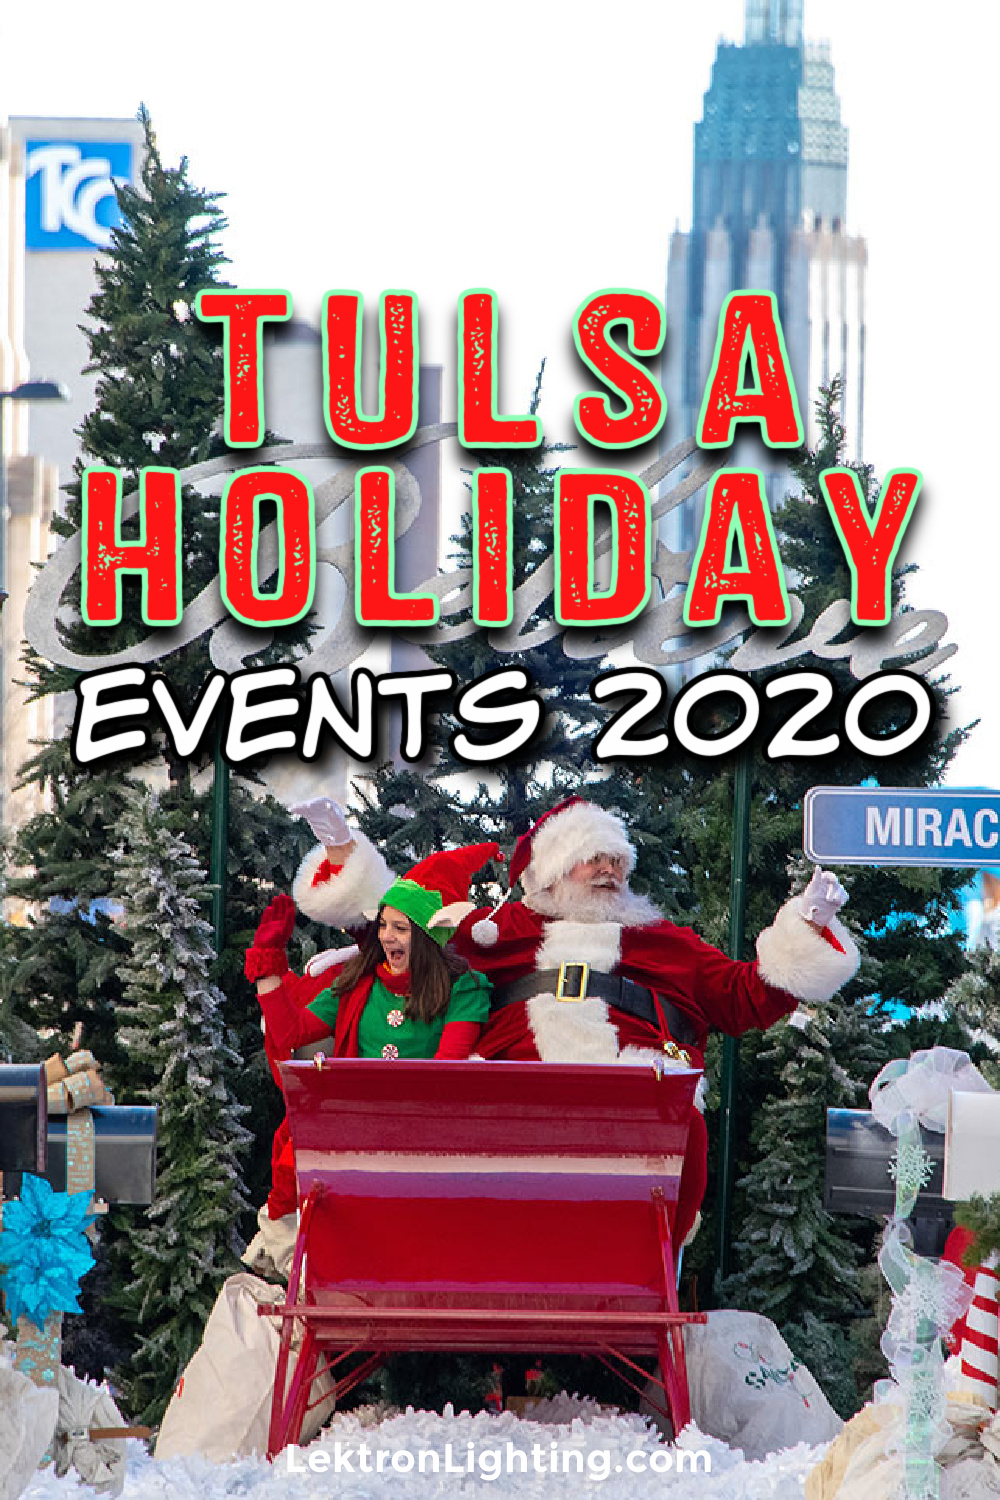 The best Tulsa holiday activities 2020 will look a little different this time around but the magic and spirit of the season will be there in full force.